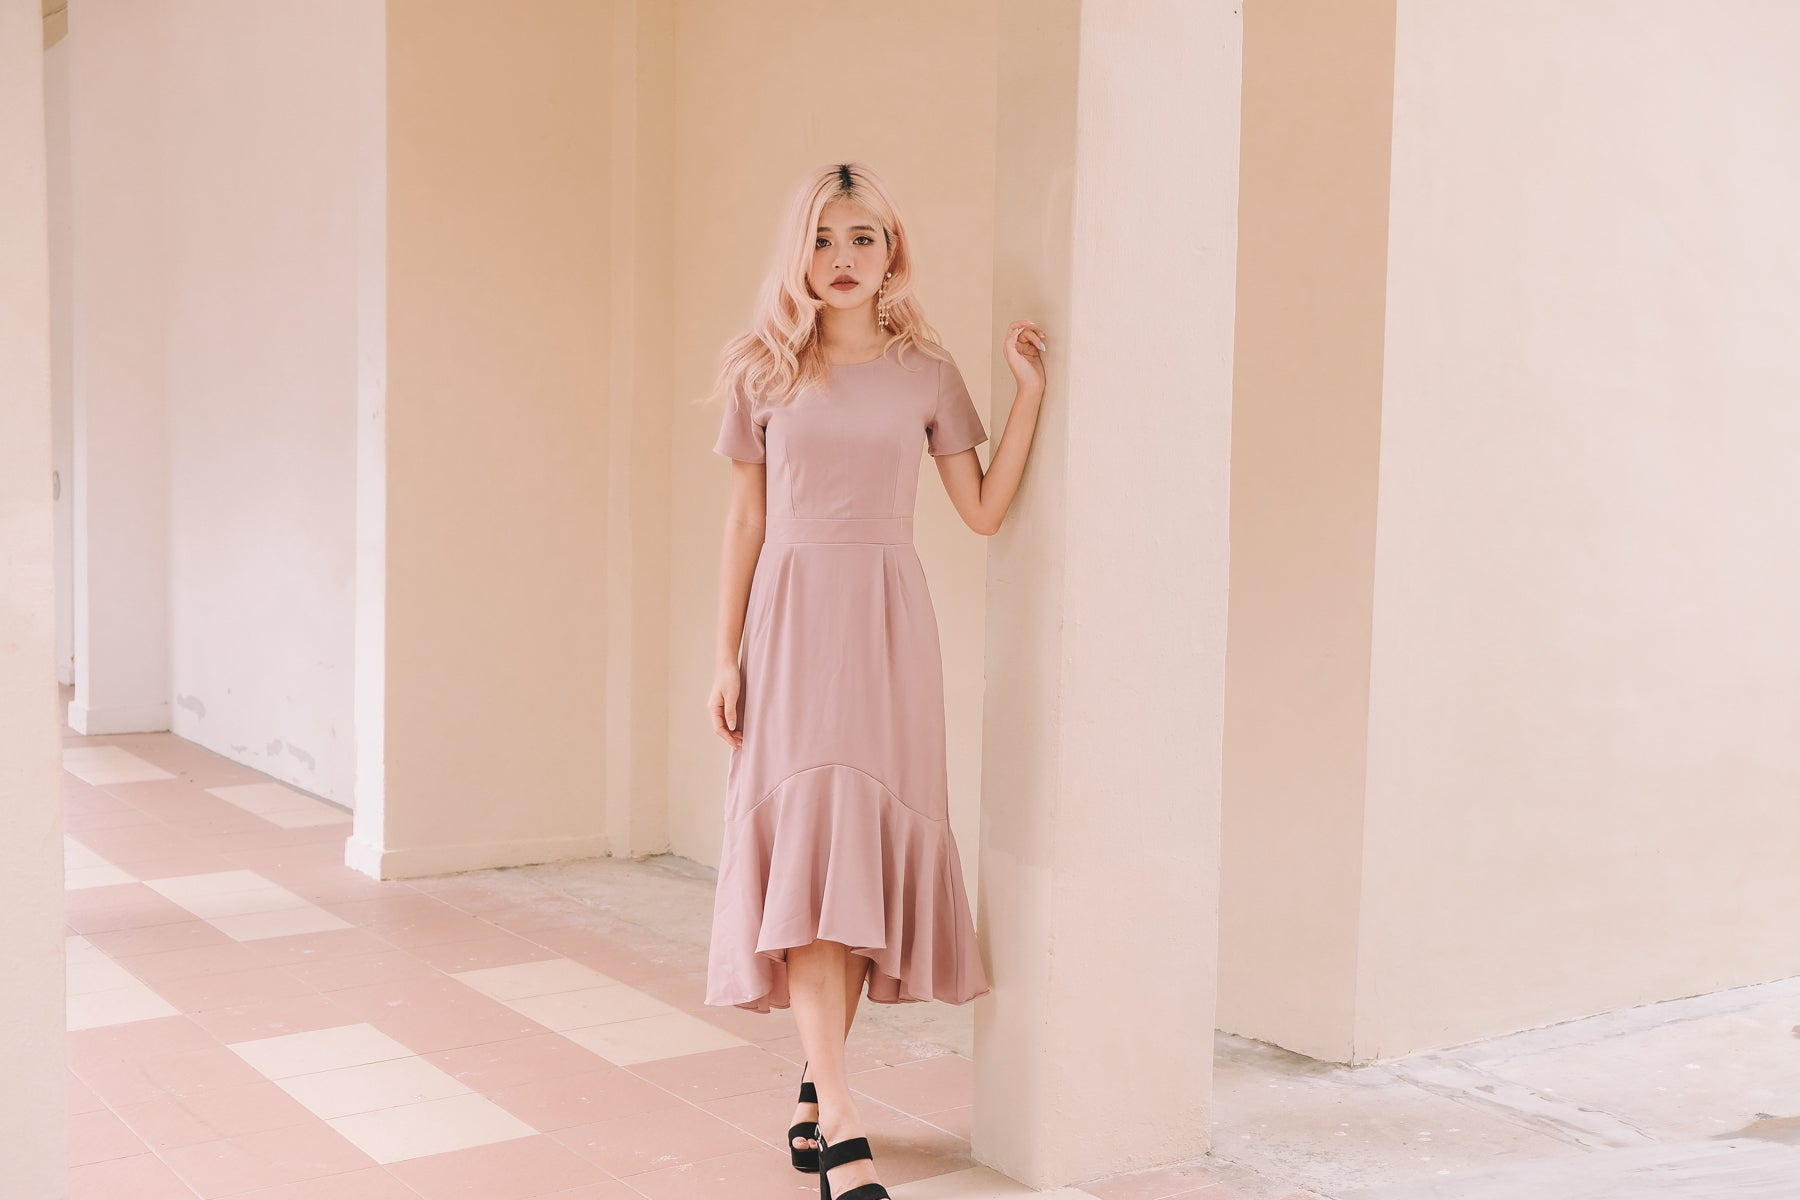 Divya Mermaid Midi Dress in Pink